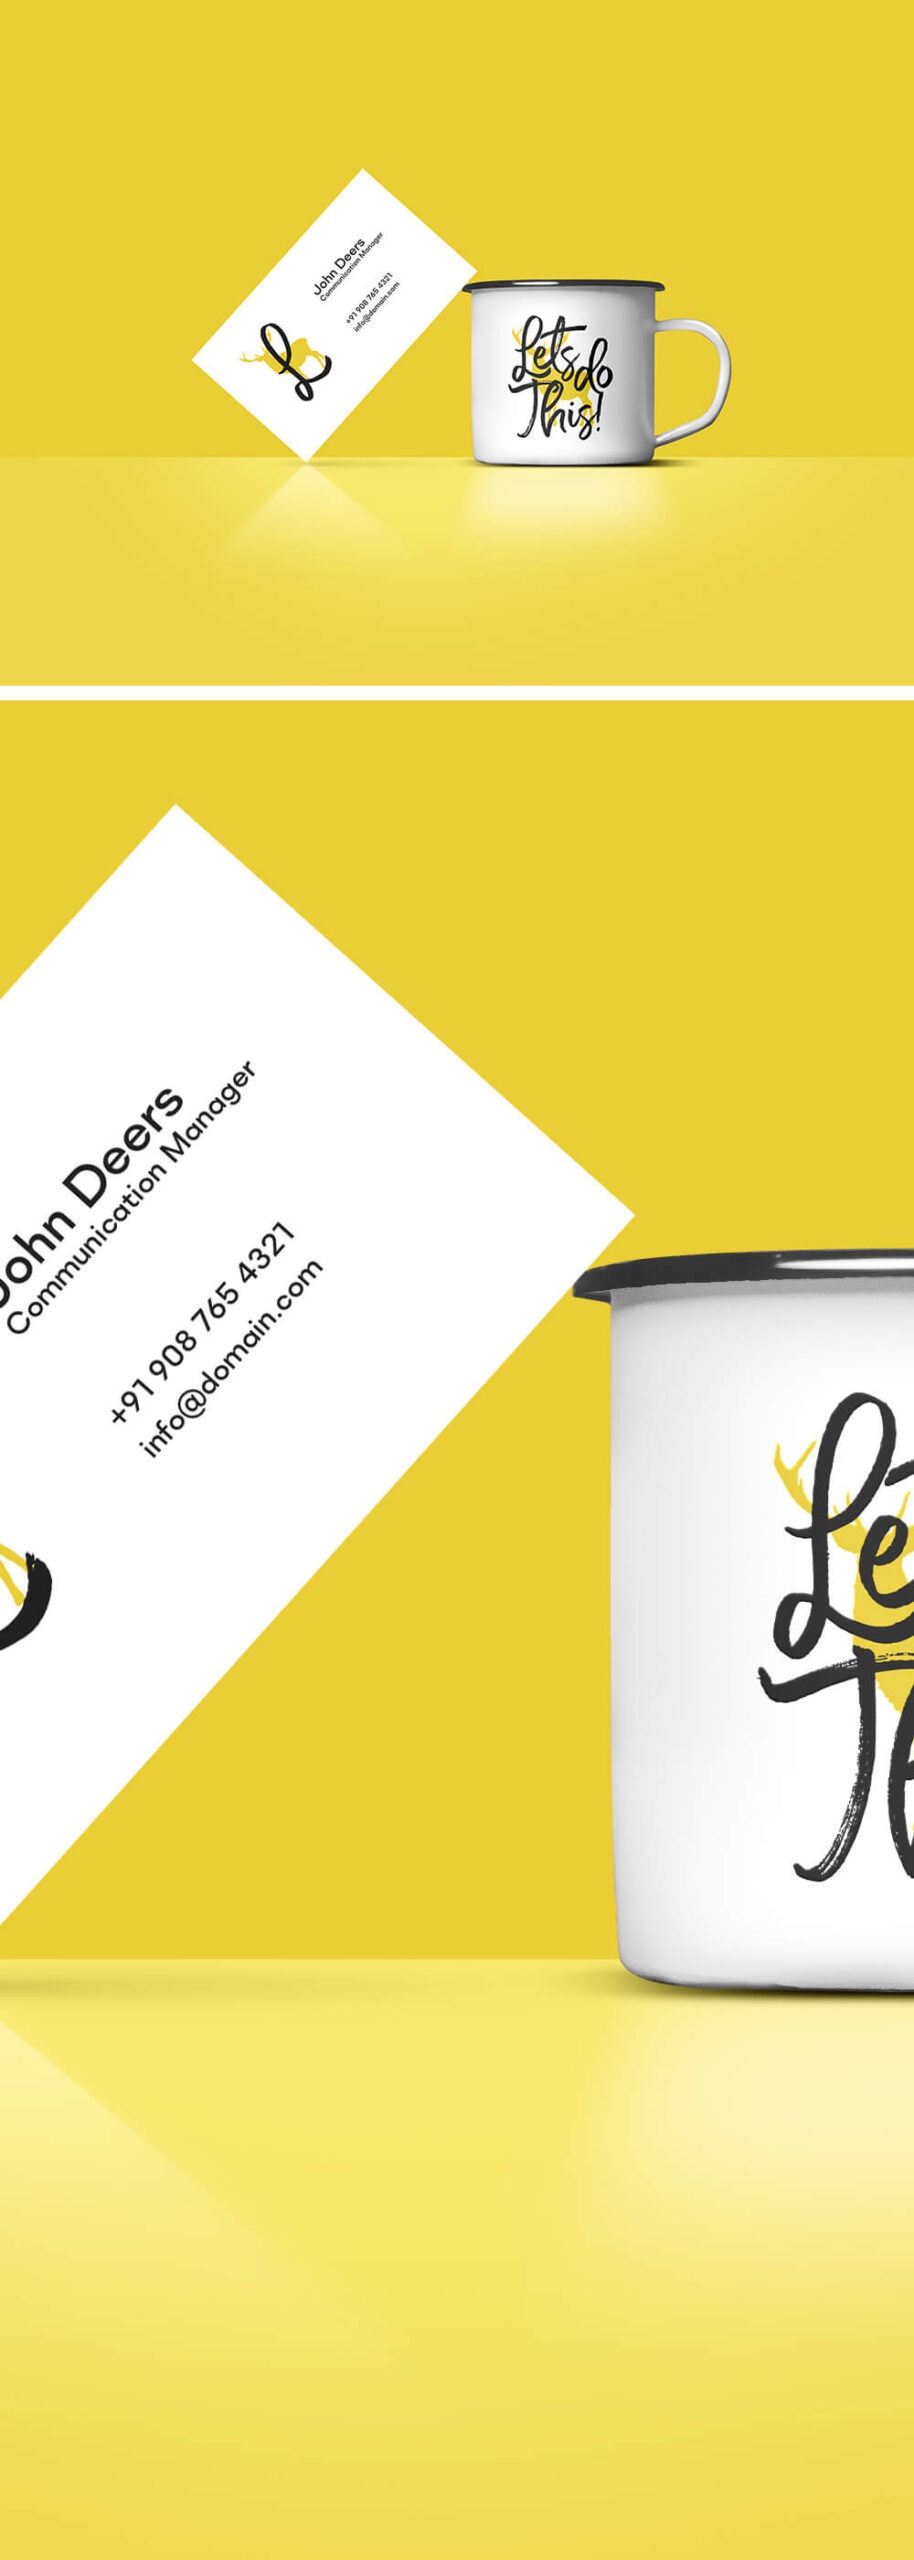 Free Business Card And Coffee Cup Mockup PSD Template